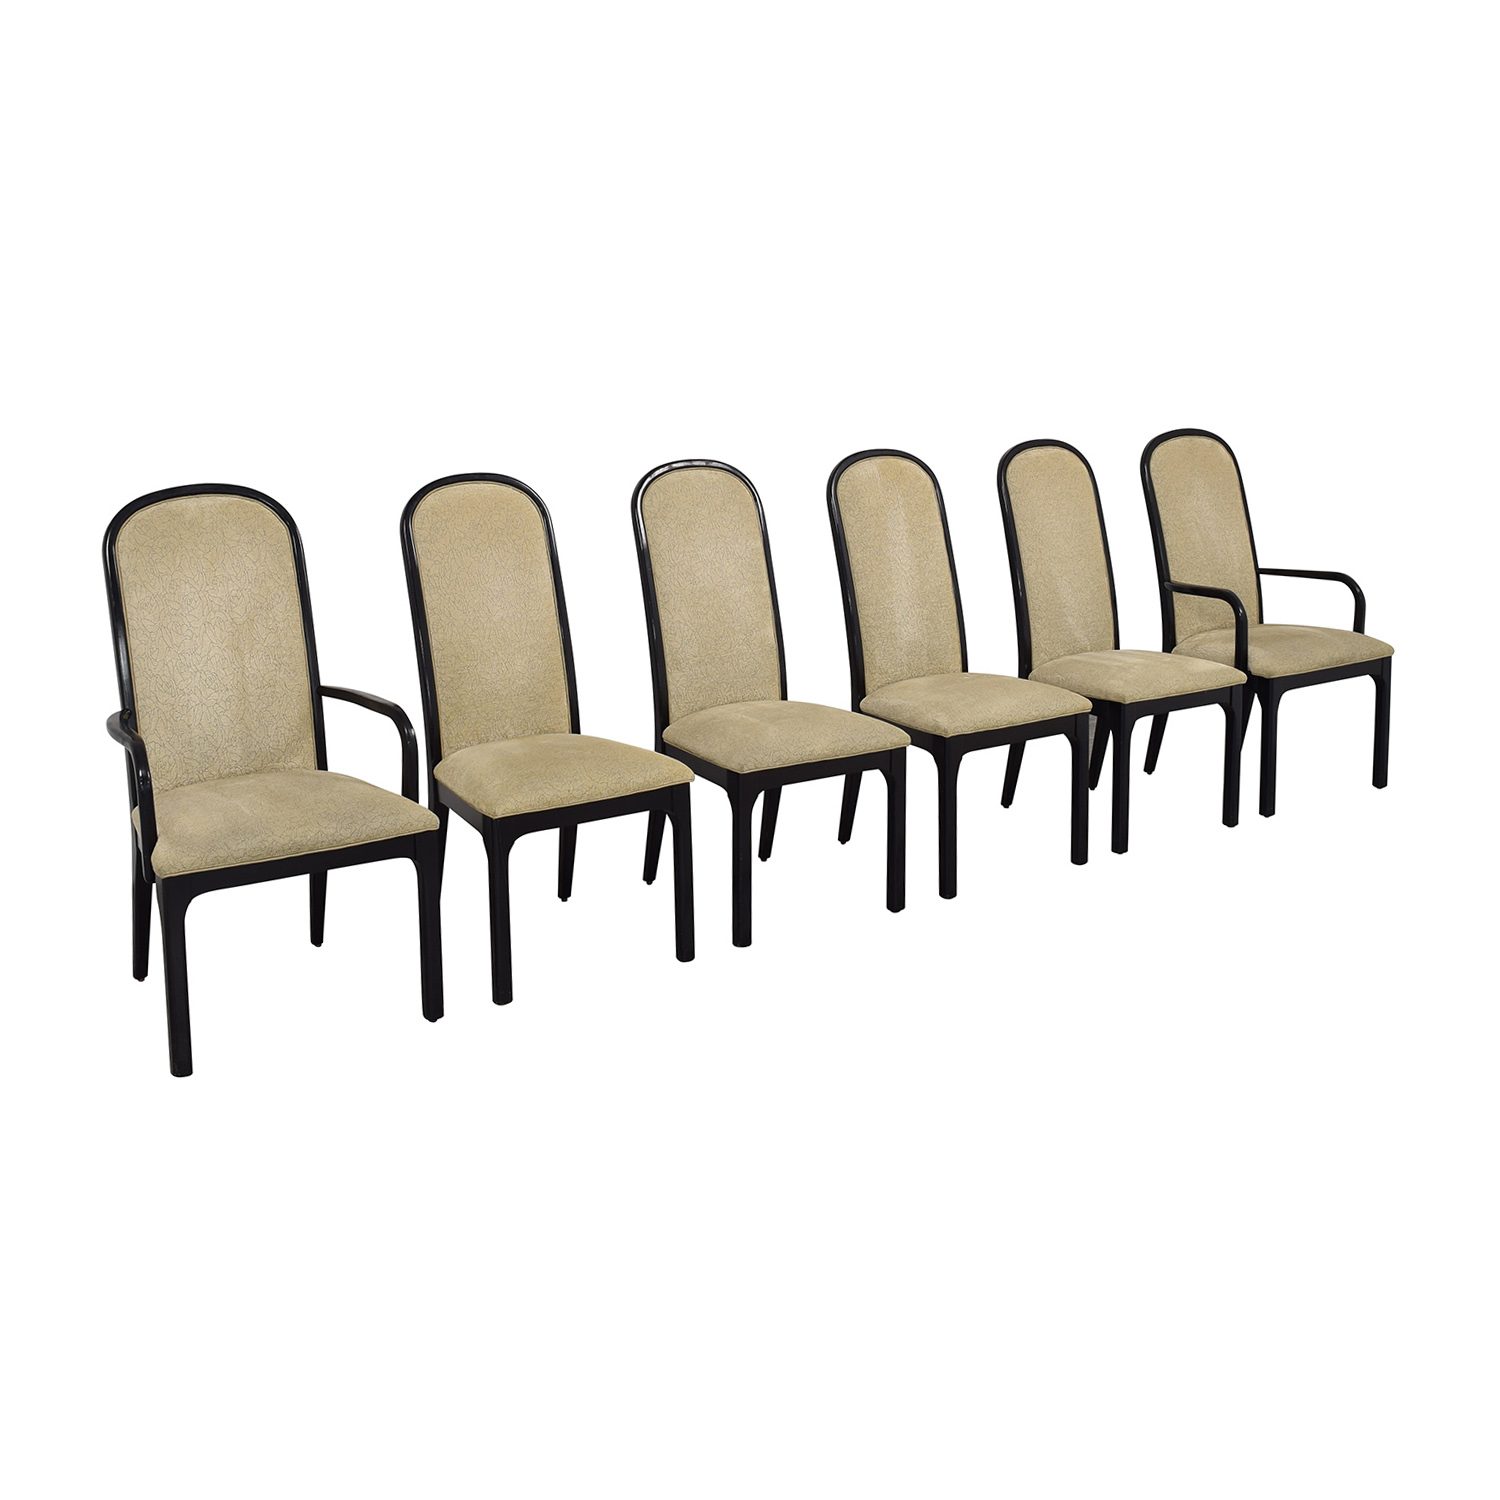 Baker Furniture Baker Furniture Upholstered Dining Chairs ct